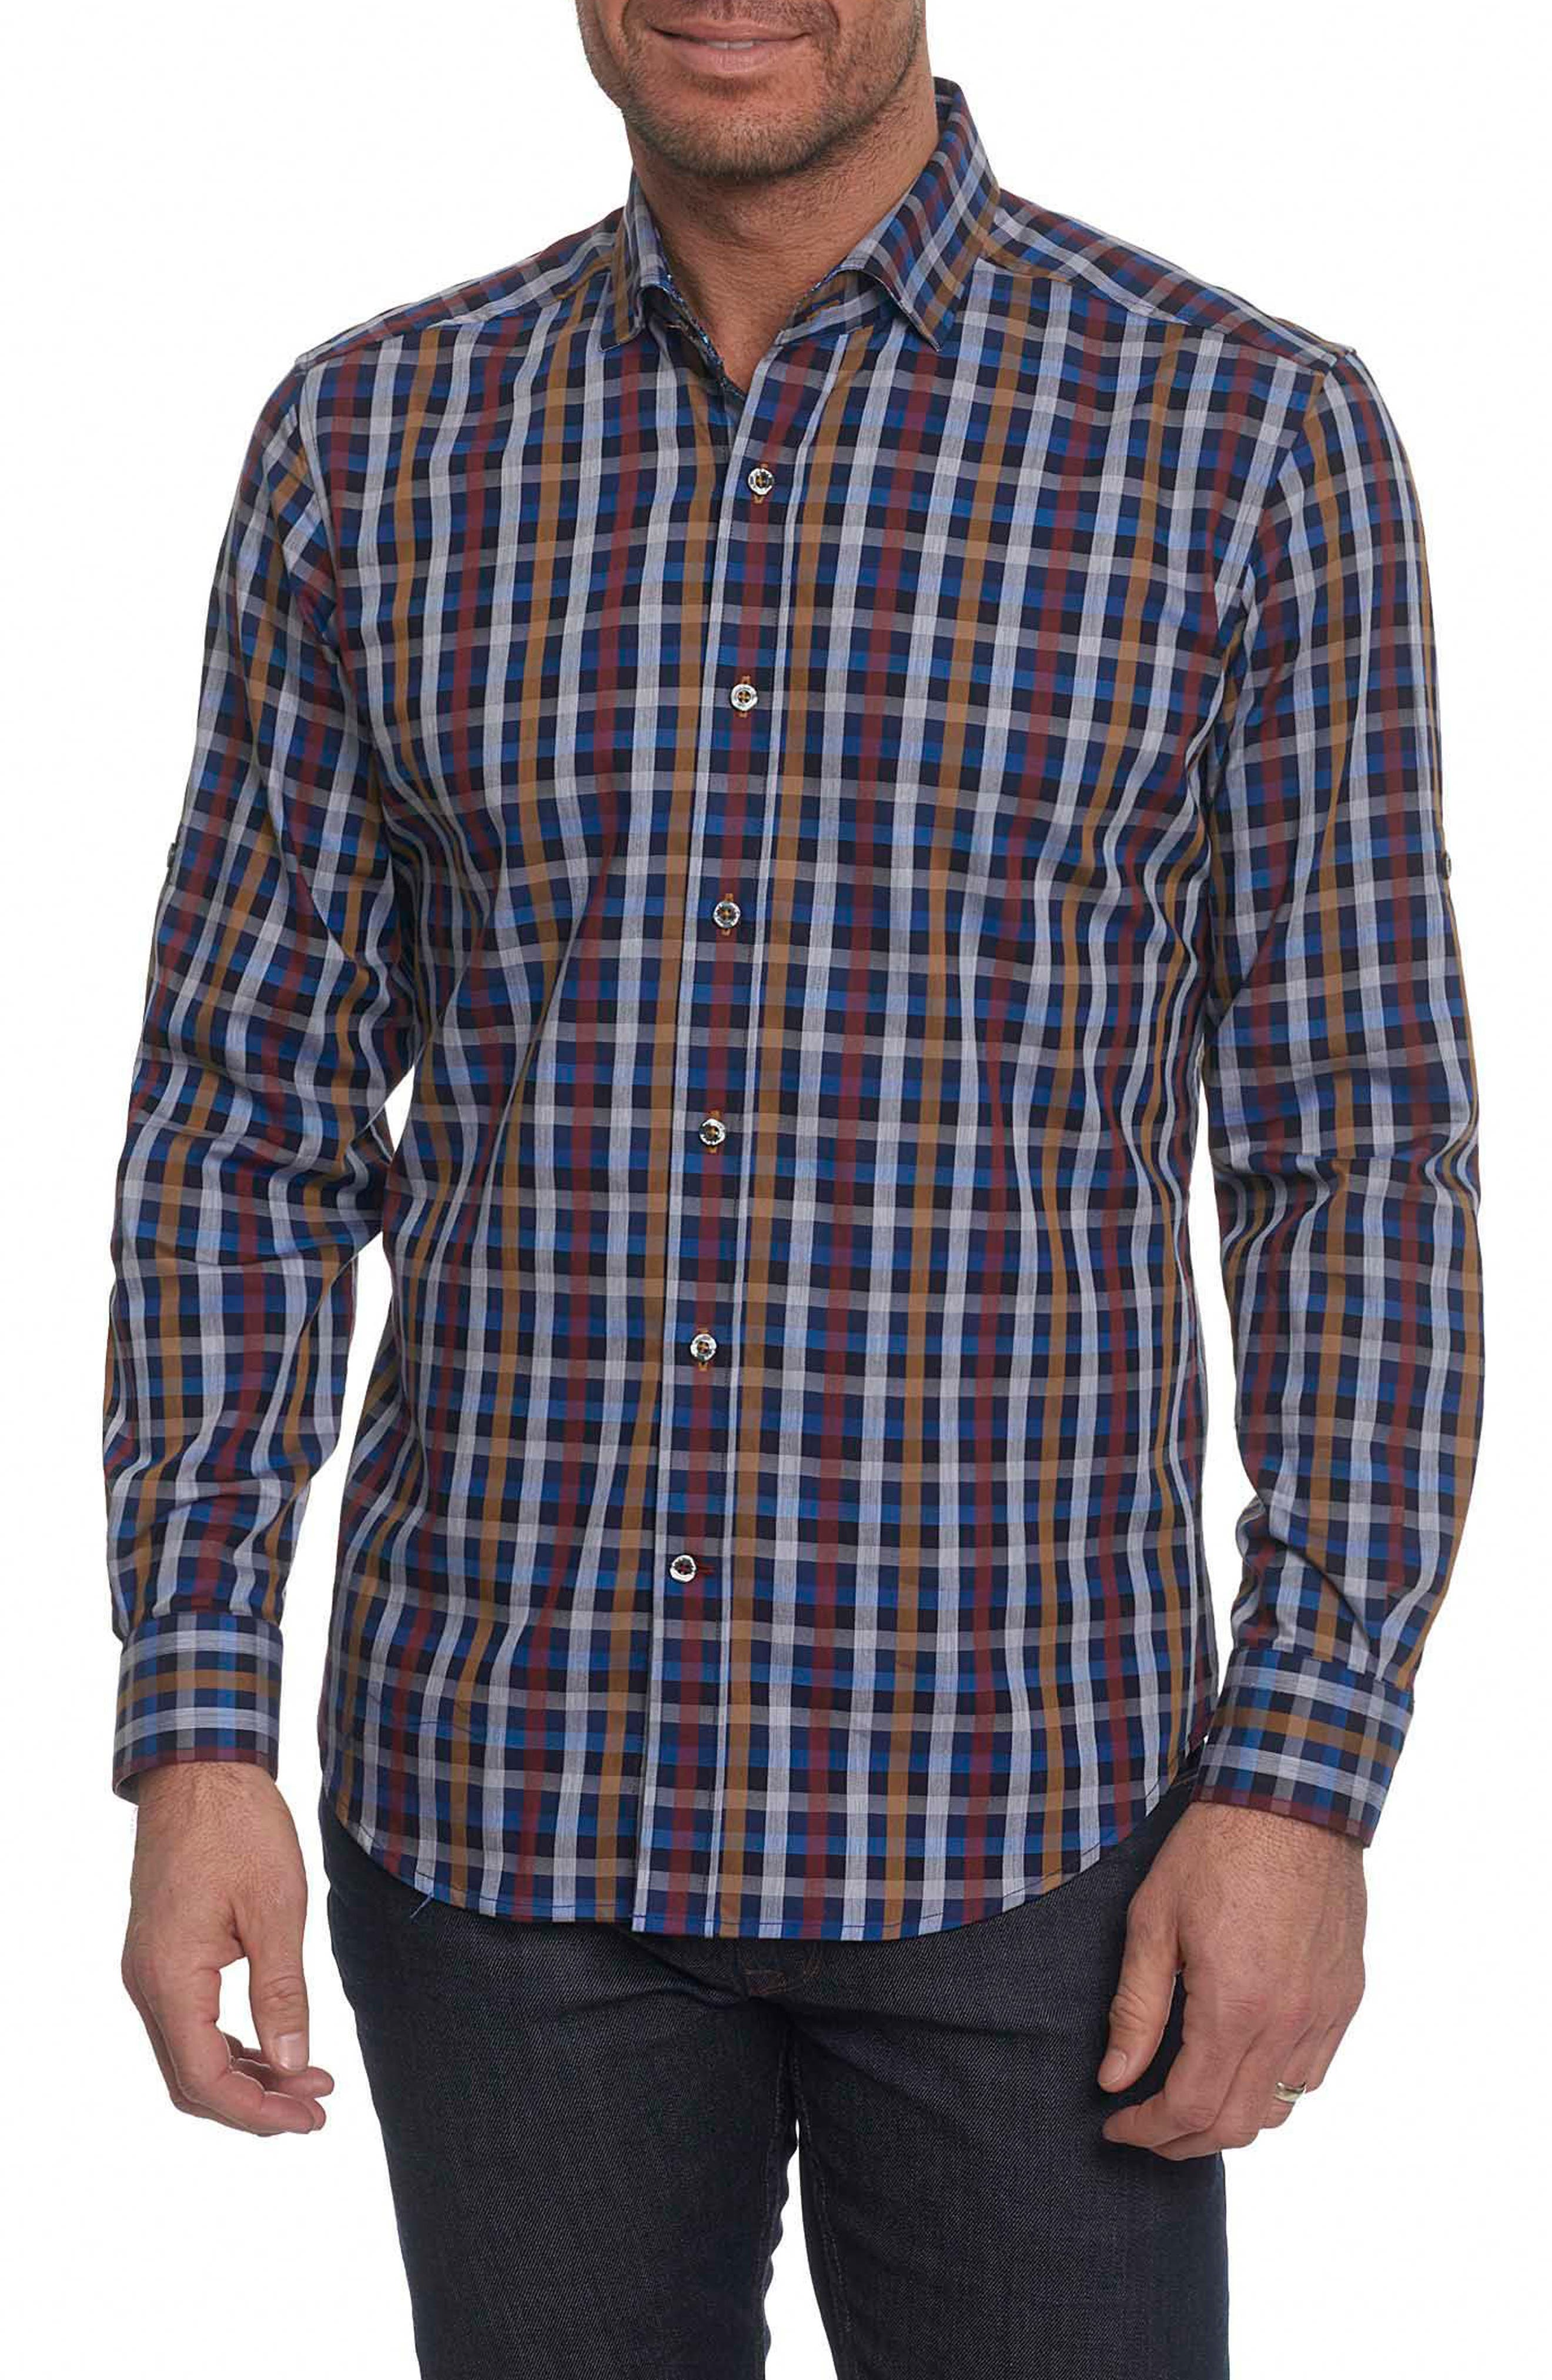 Main Image - Robert Graham Carsons Tailored Fit Check Sport Shirt